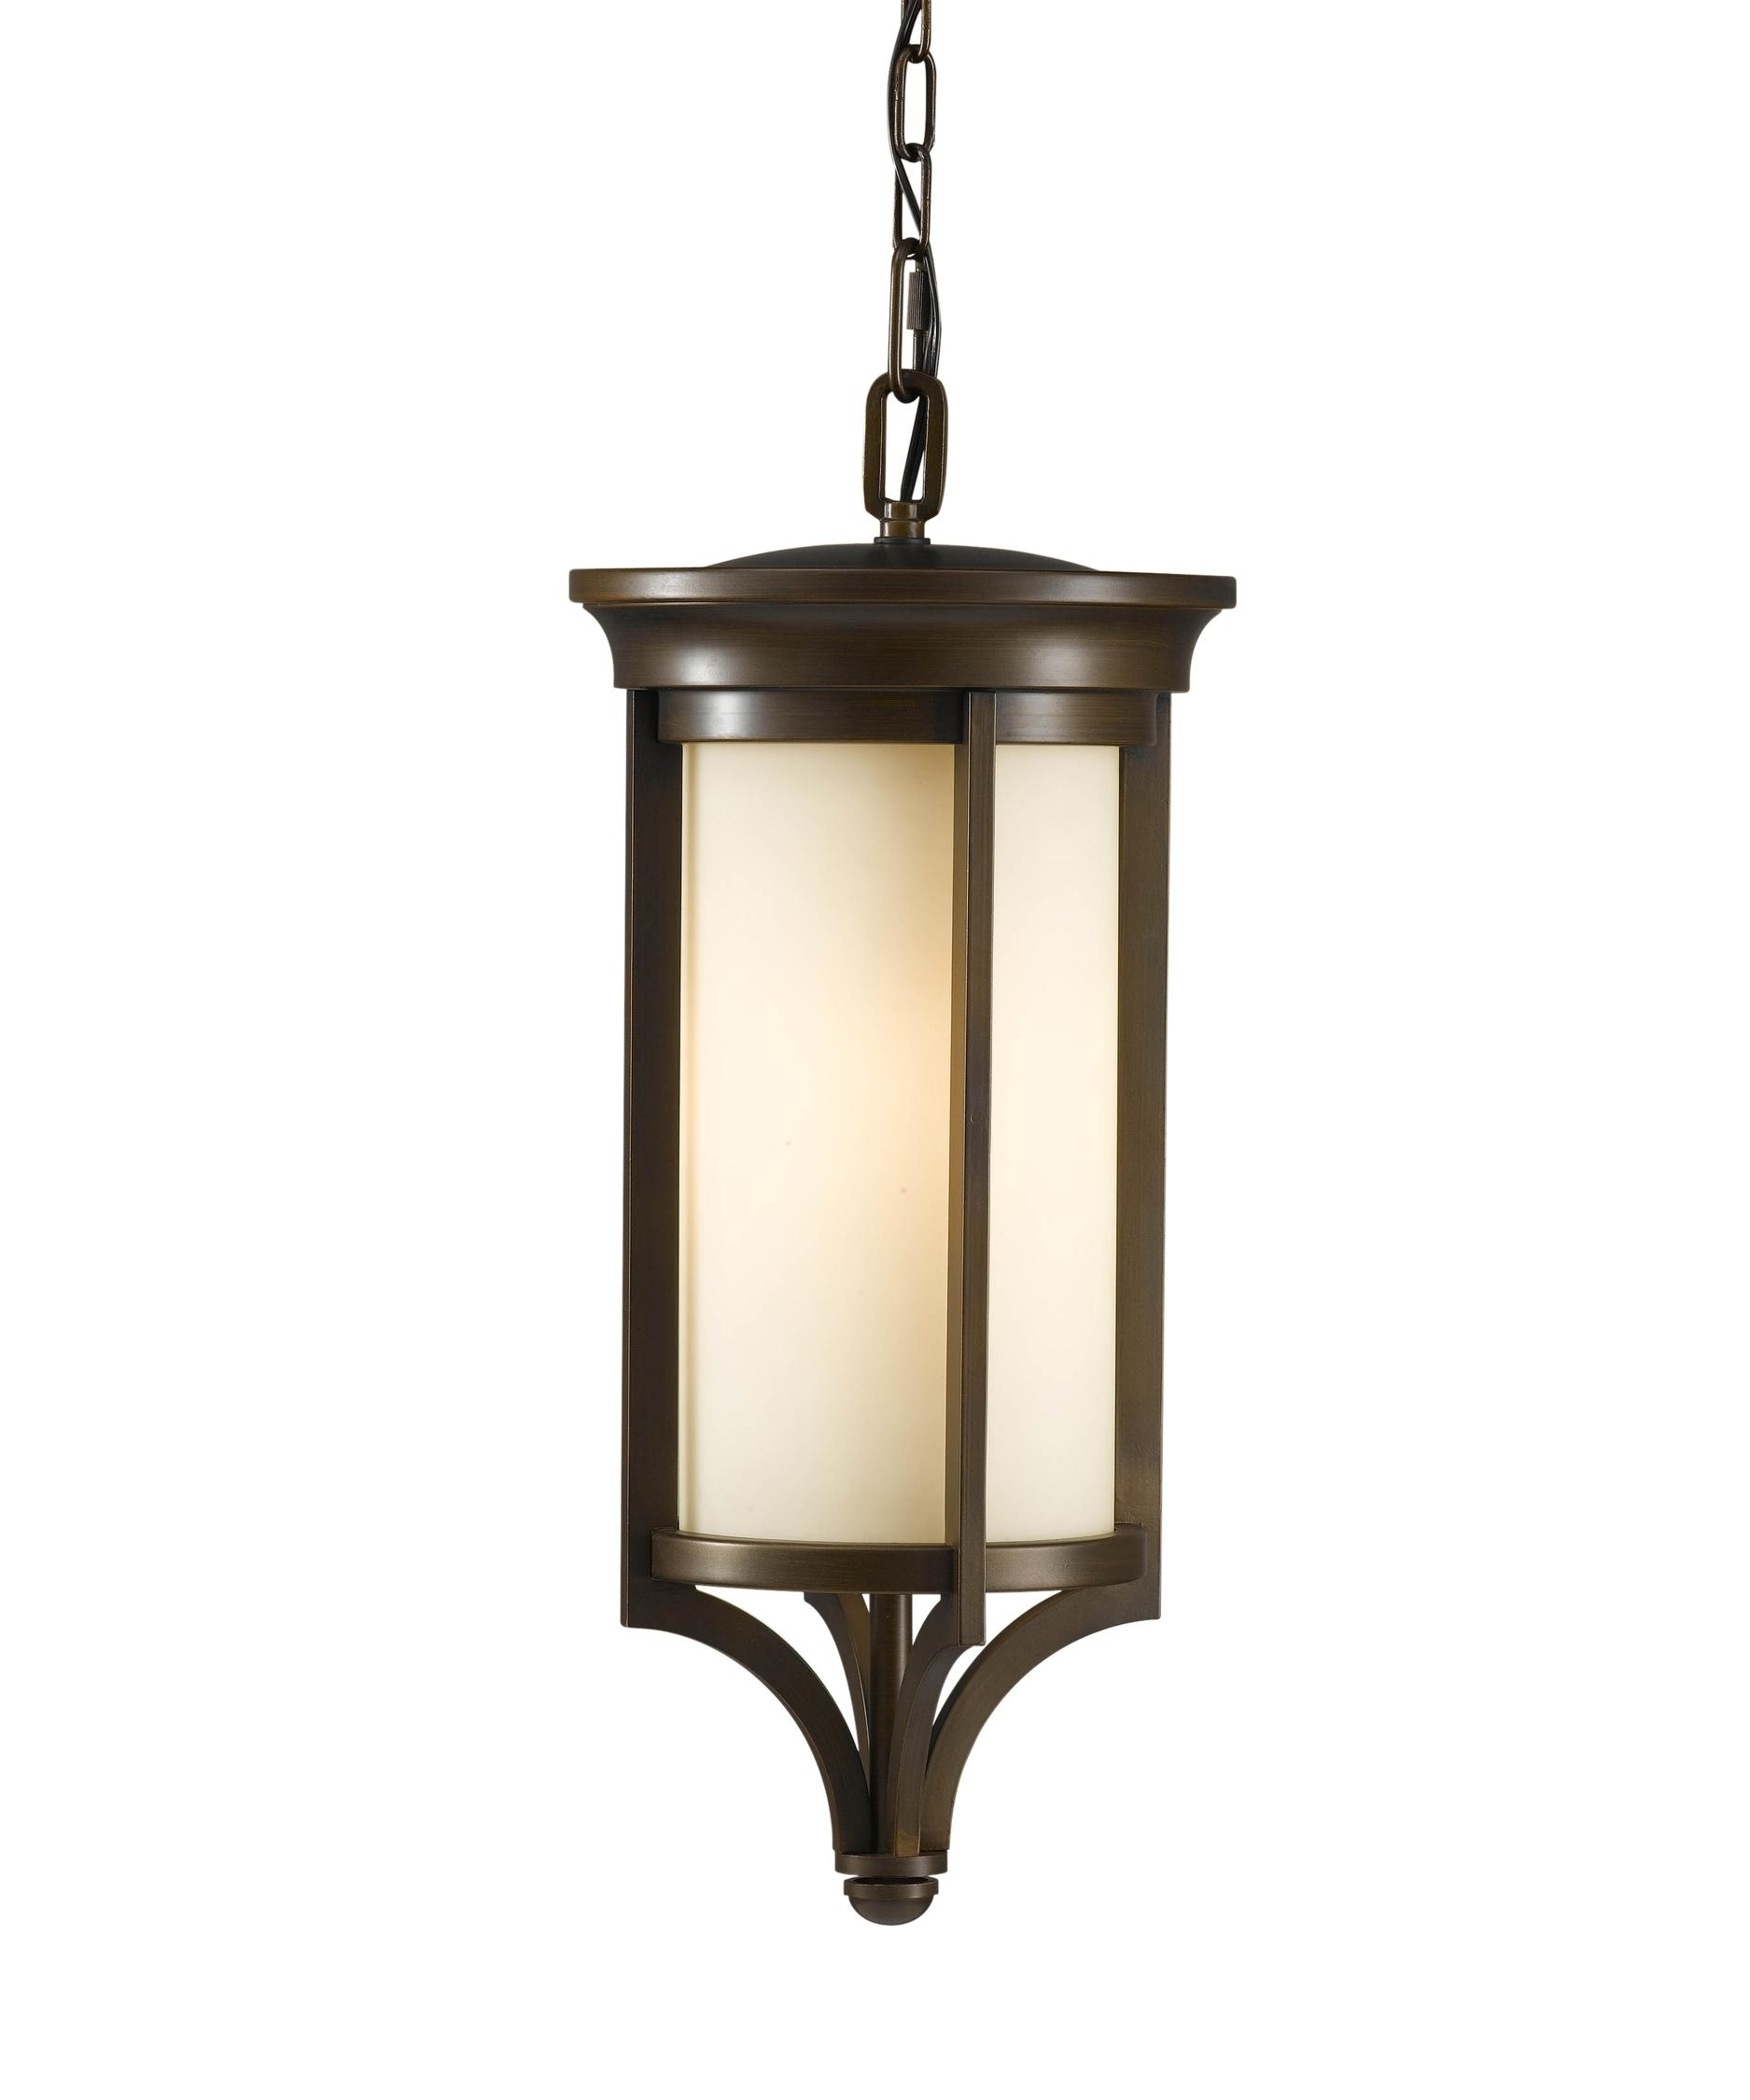 2018 Murray Feiss Ol7511 Merrill 10 Inch Wide 1 Light Outdoor Hanging Inside Outdoor Hanging Electric Lanterns (View 12 of 20)